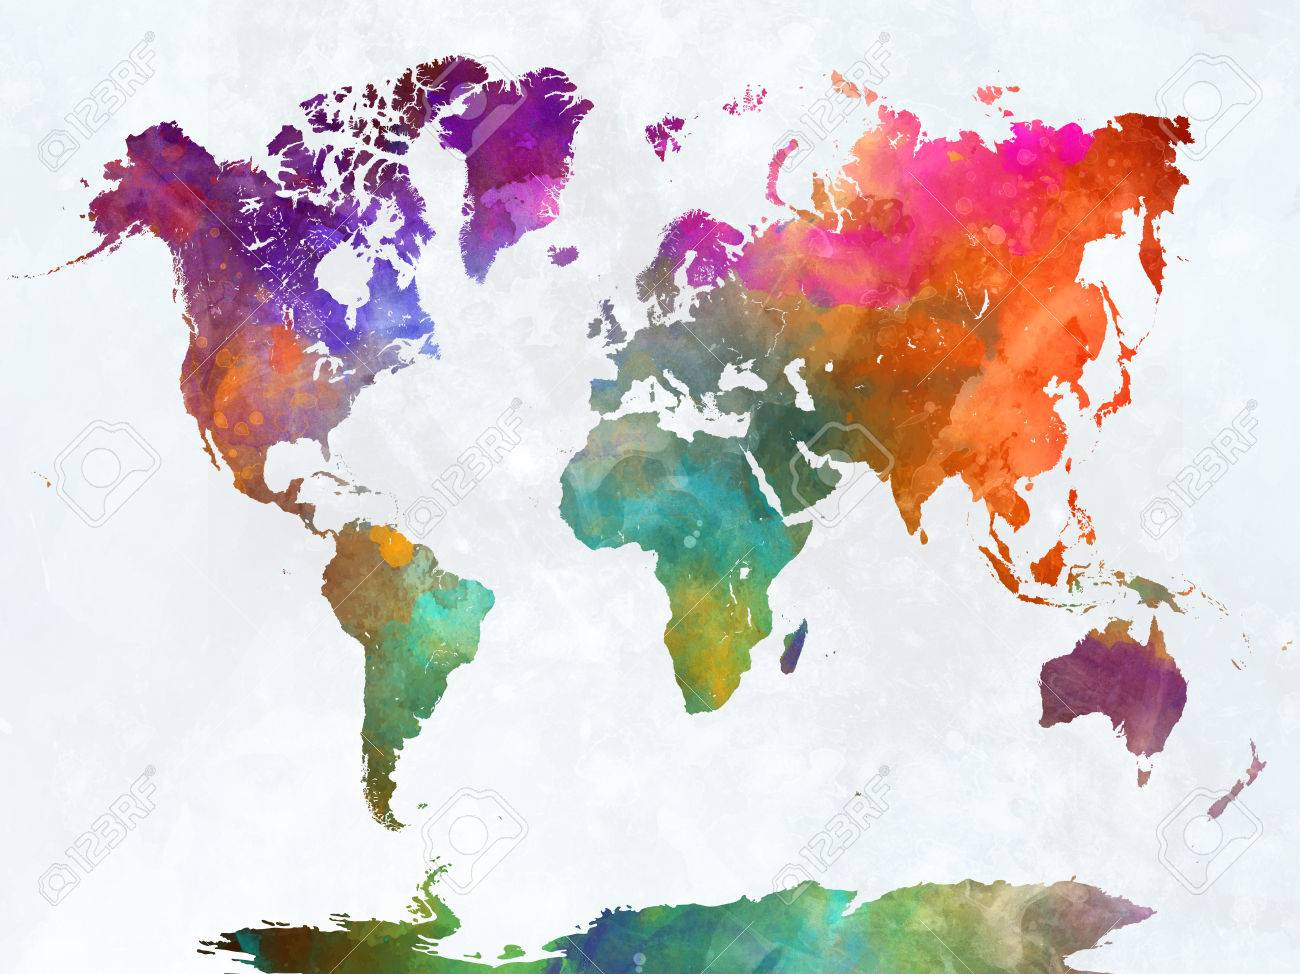 World Map Painting World Map In Watercolor Painting Abstract Splatters Stock Photo